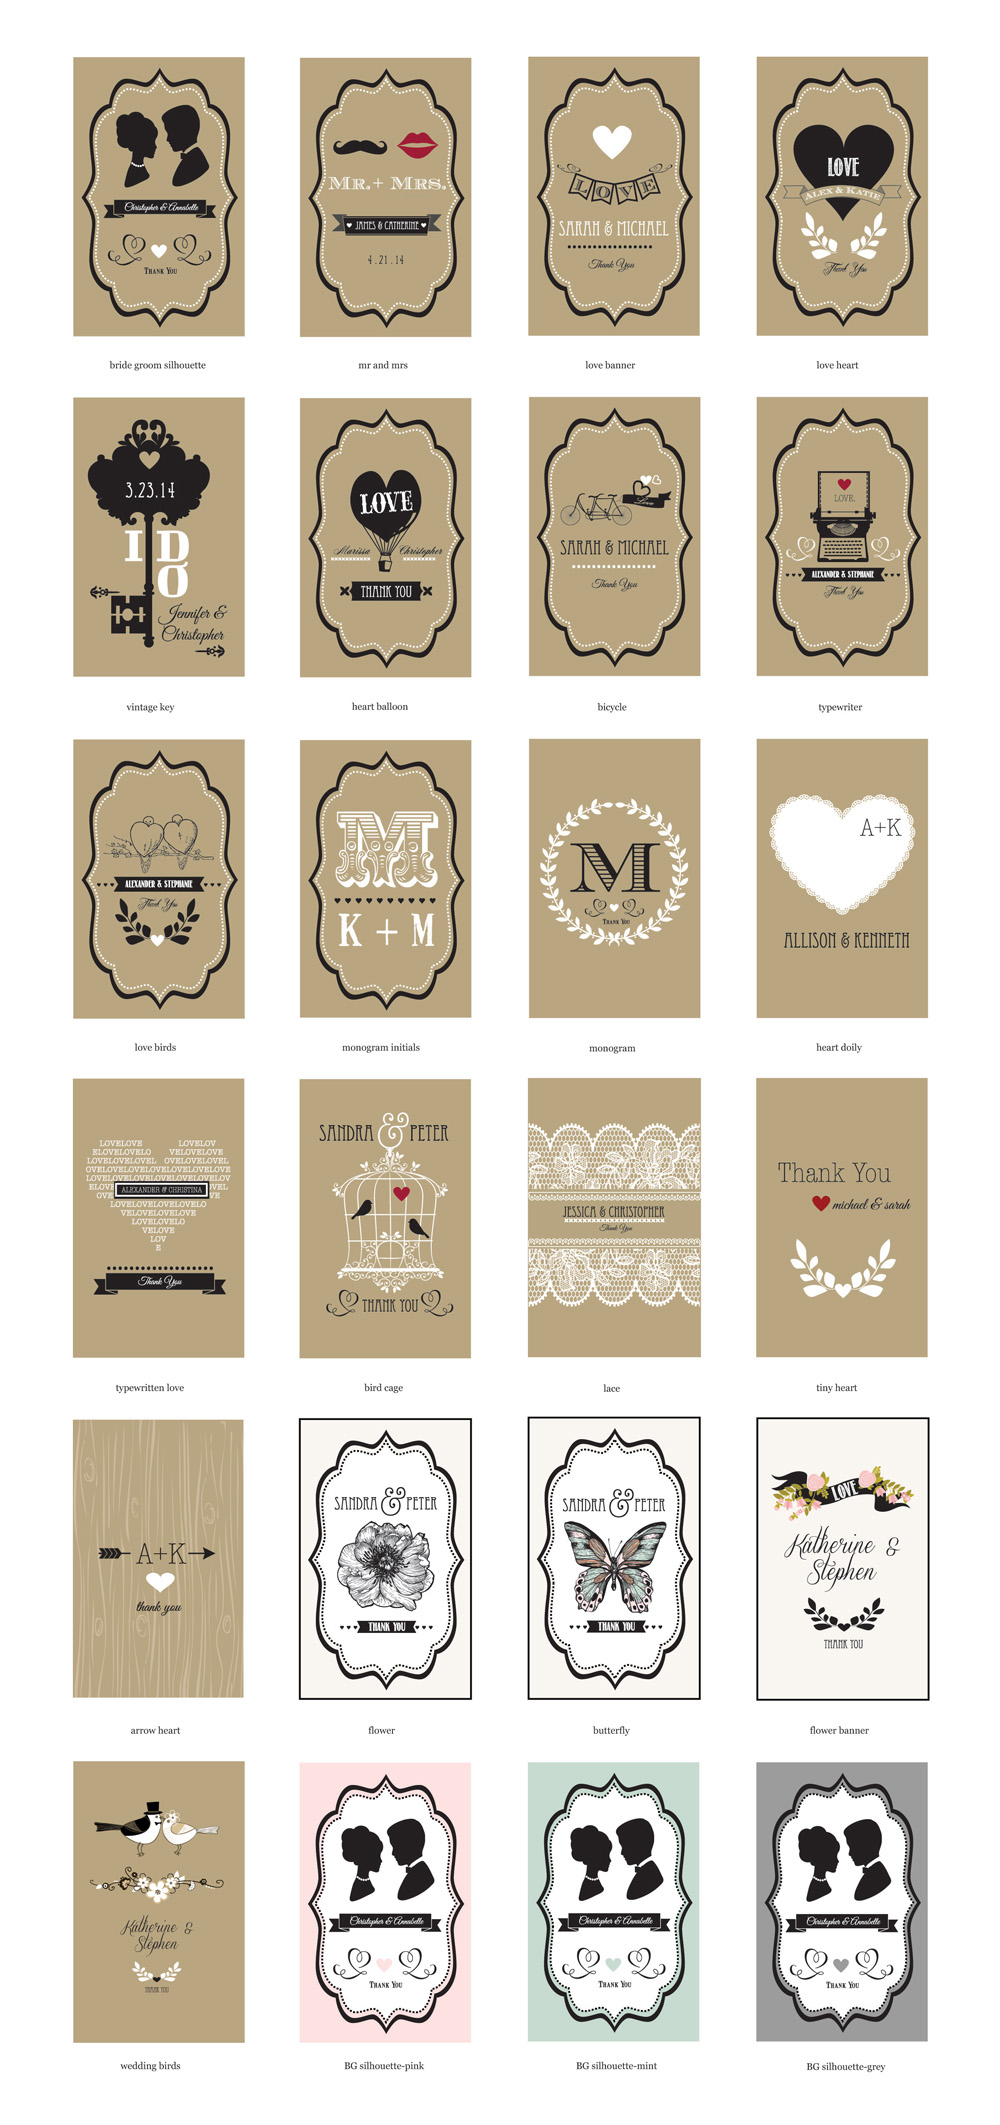 Vintage Wedding Personalized Seed Packets - Ecopartytime